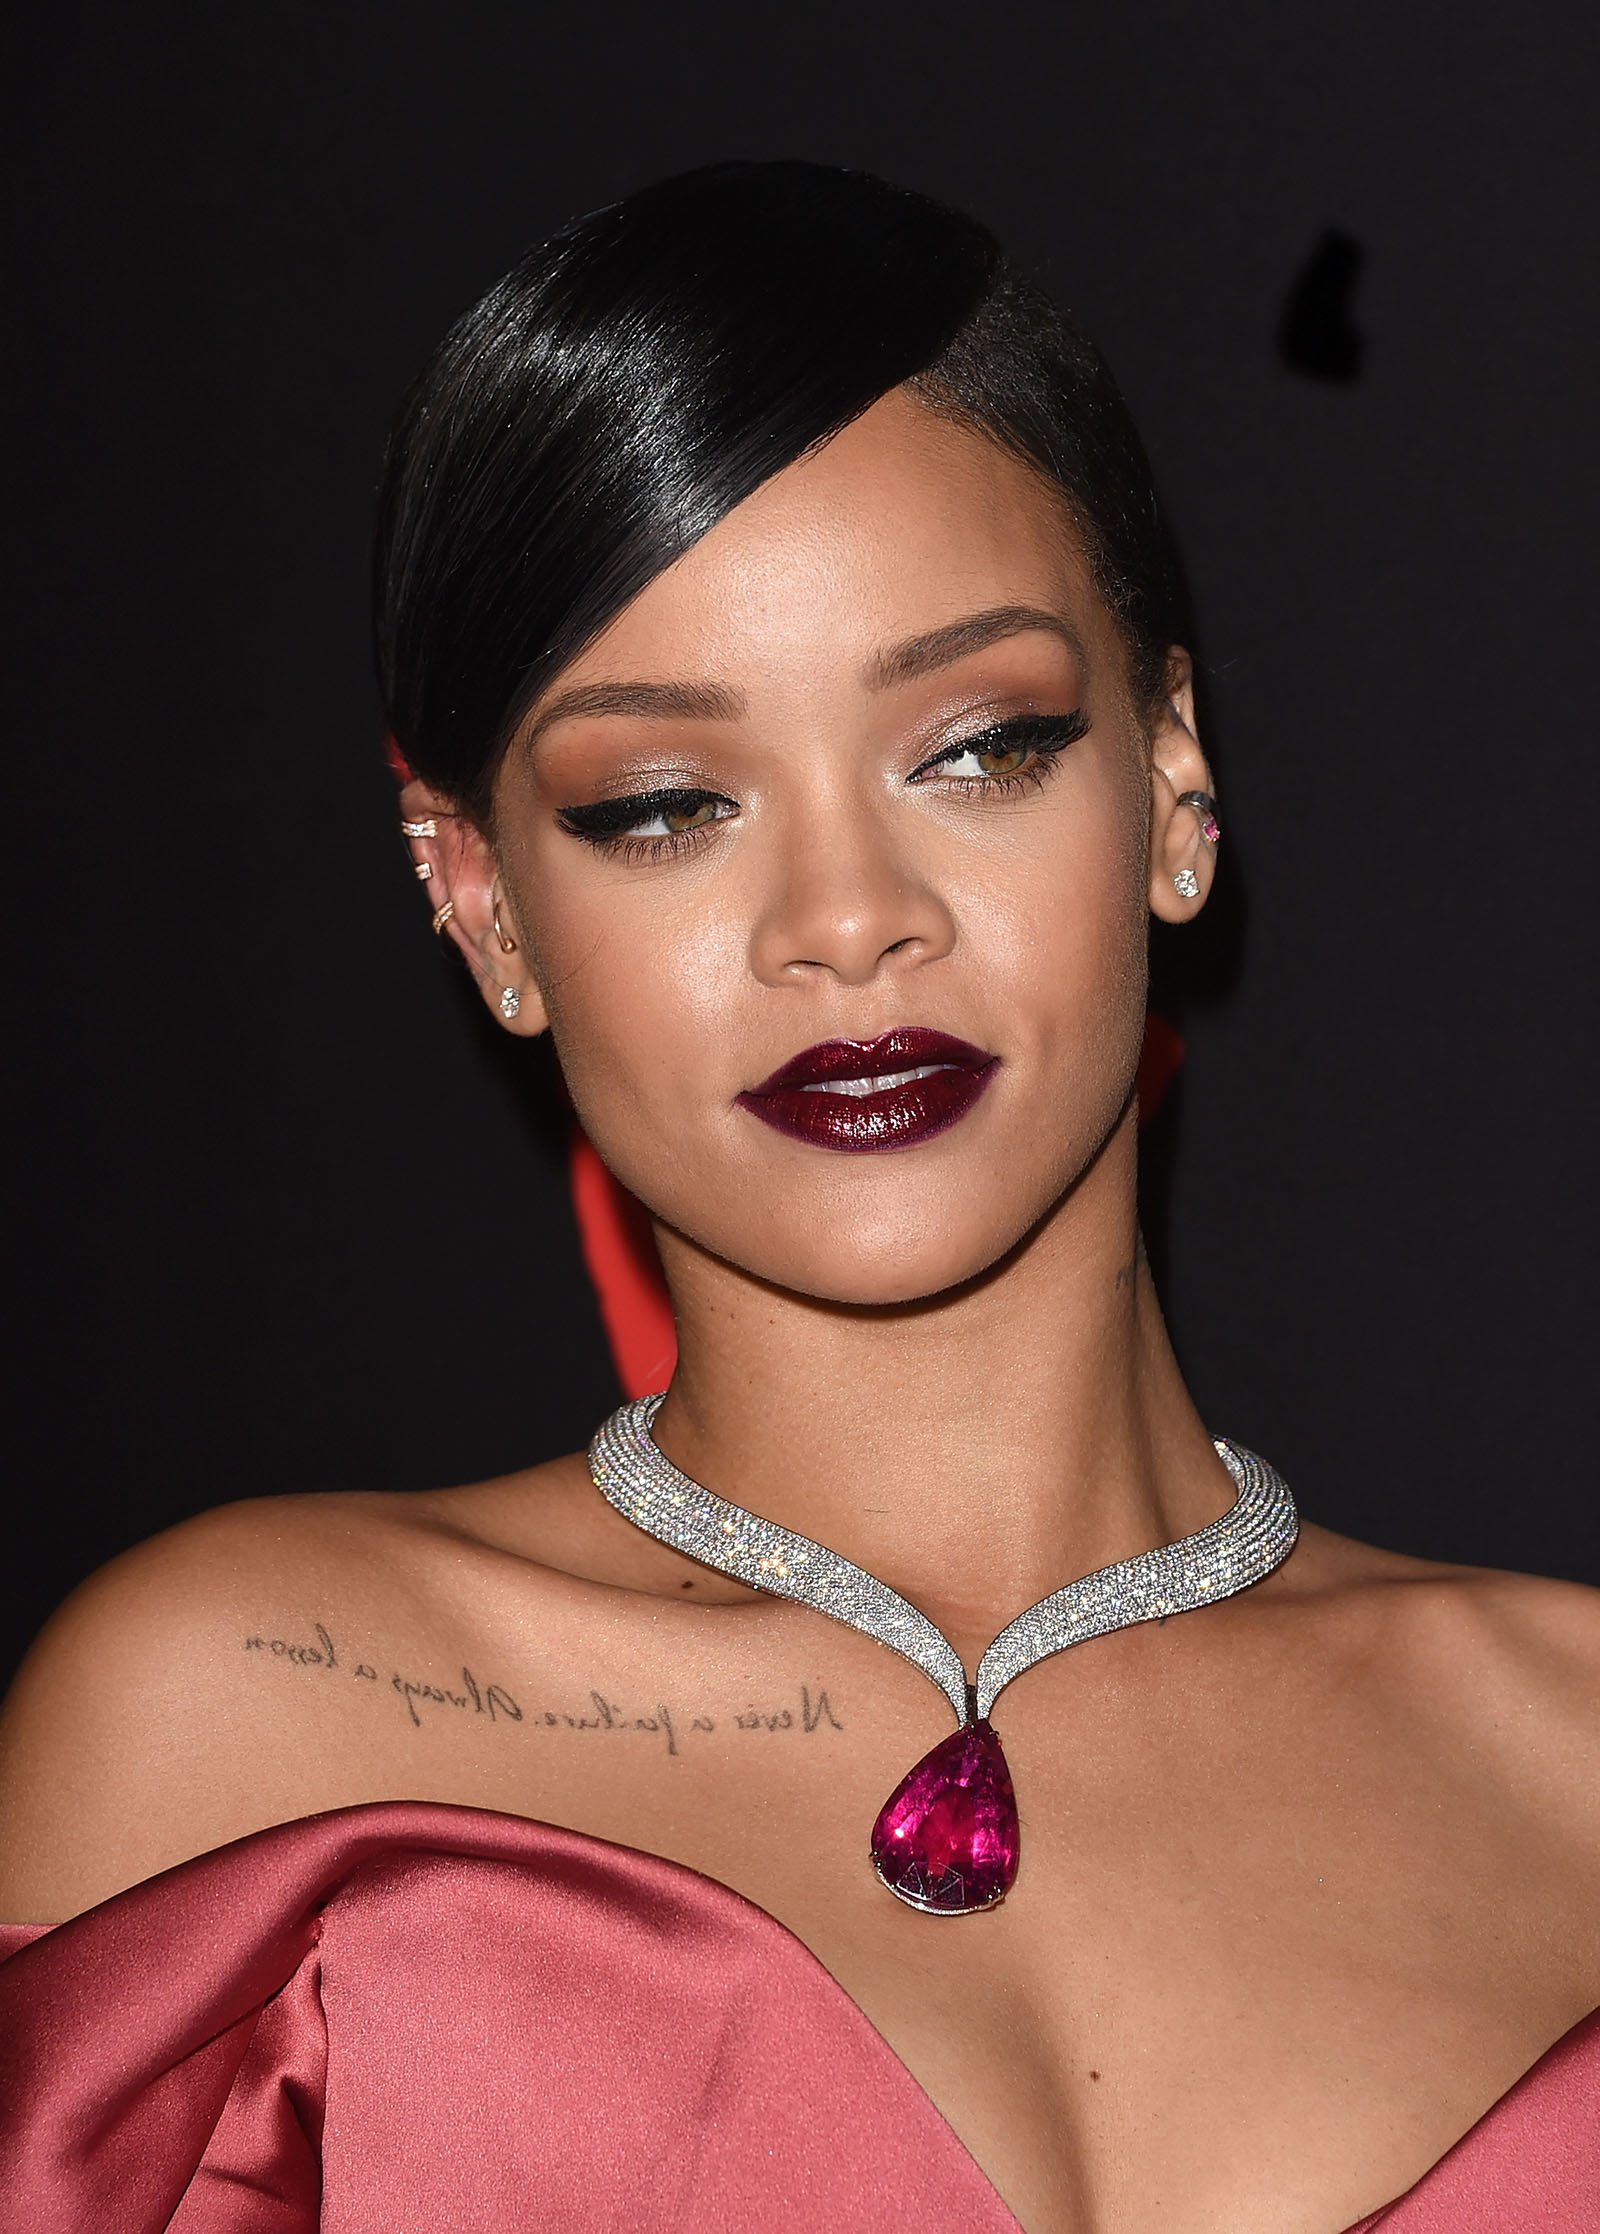 Rihannas-Most-Iconic-Makeup-Looks